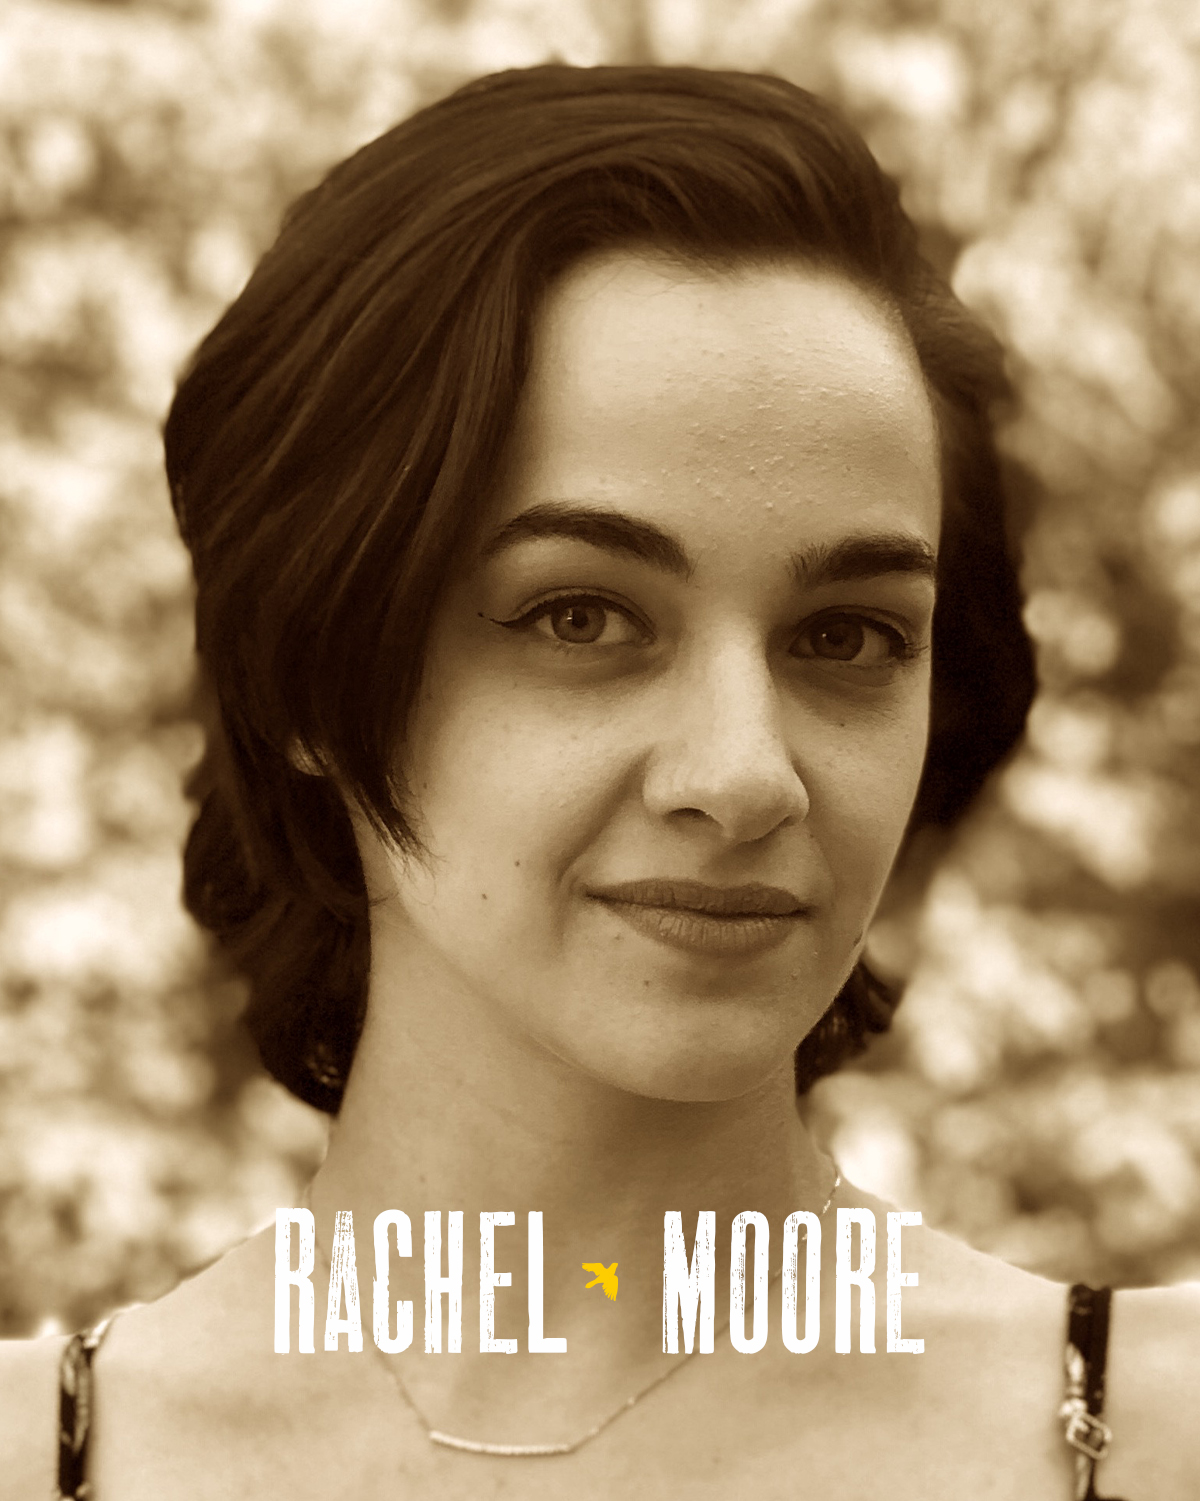 RACHEL MOORE  (Ensemble) is a Morgantown-born actress and WVU alumnus. She currently lives and works in Boulder, Colorado, where she recently performed at the historic Stanley Hotel. She has also appeared in other WVPT productions including  Peter and the Starcatcher  (Prentiss),  A Christmas Carol  (Ghost Past), and  Young Frankenstein  (Ensemble). Rachel is thrilled to be back home to perform in this piece of West Virginia history and thanks everyone at WVPT for this opportunity. Montani Semper Liberi.